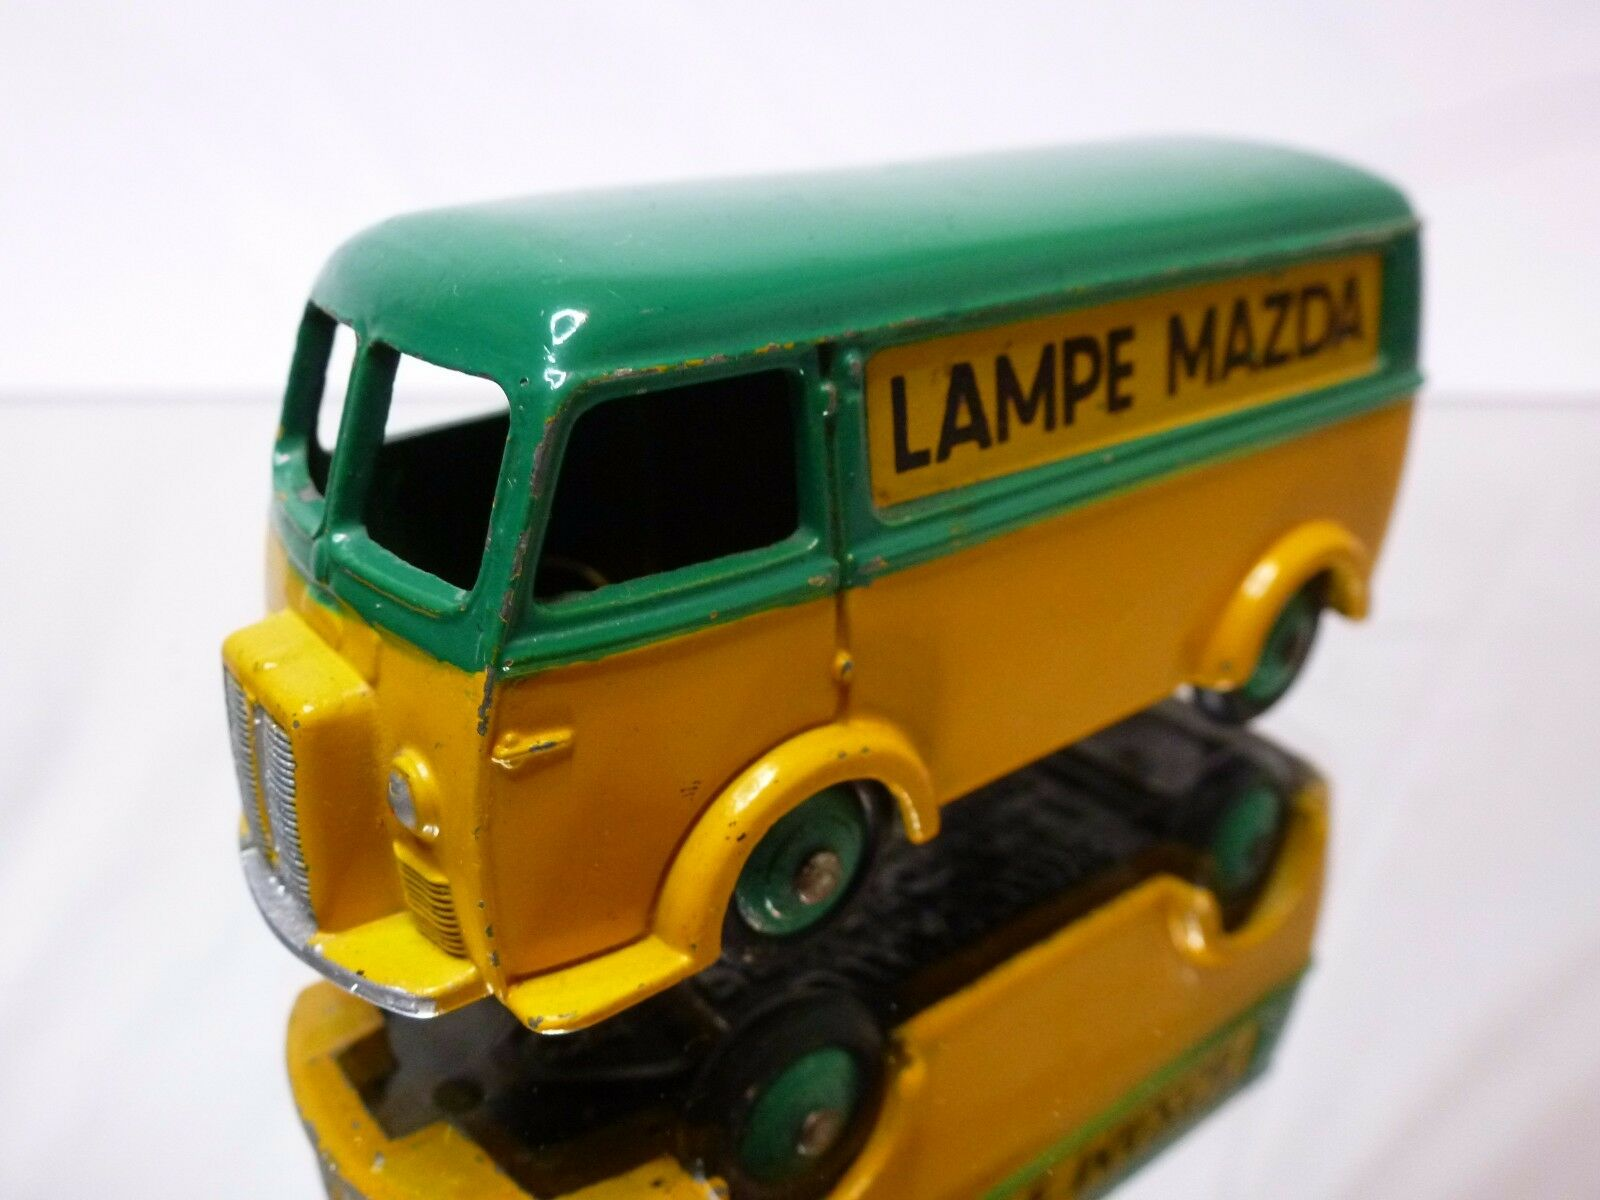 DINKY TOYS 25B PEUGEOT D.3.A D3A - LAMPE MAZDA 1 43 - GOOD CONDITION